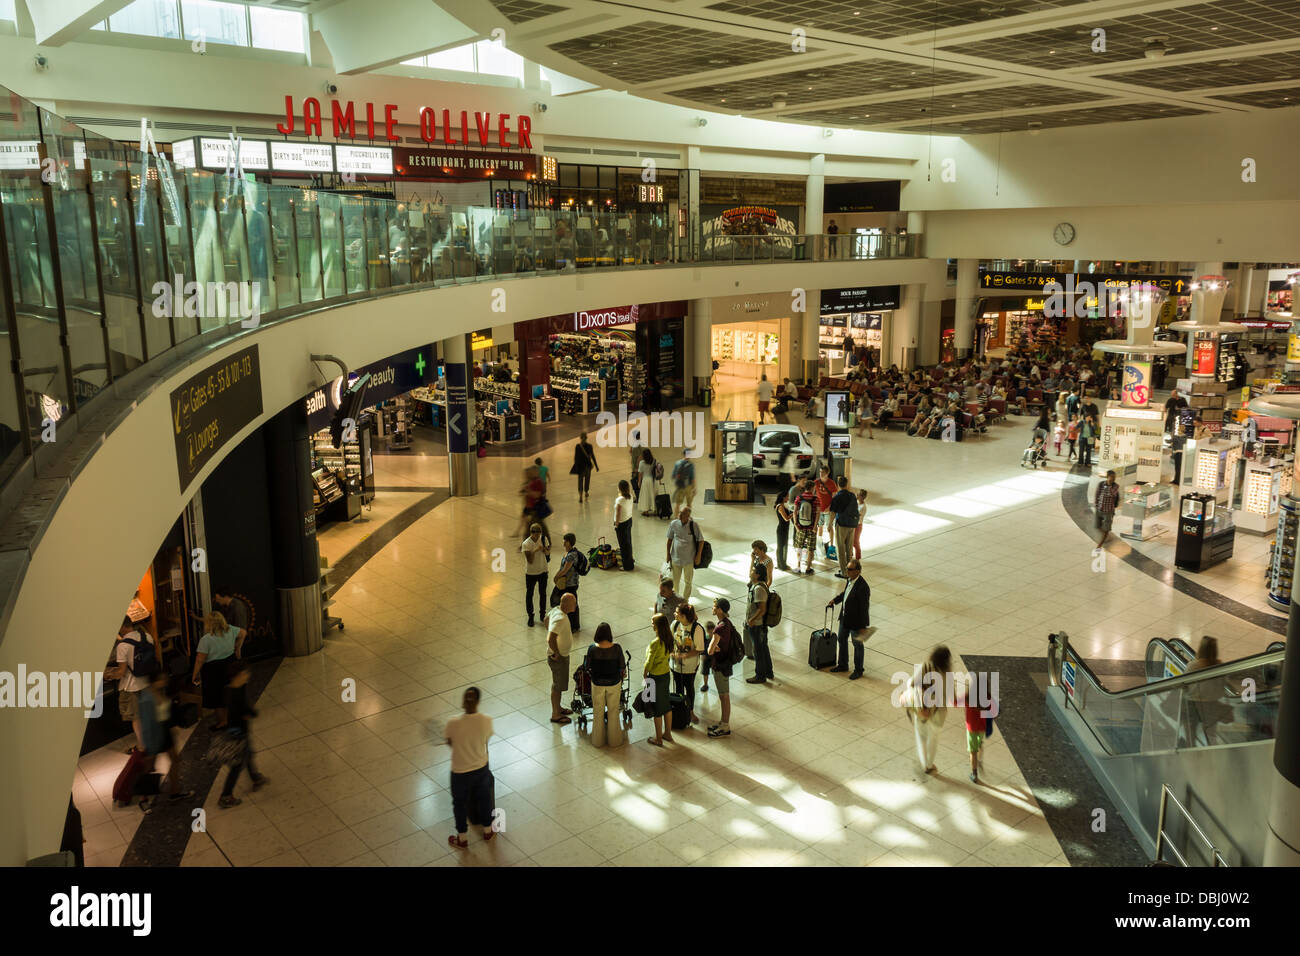 The Departure Lounge at Gatwick Airport London, showing the entrance to the Duty Free shopping area. - Stock Image